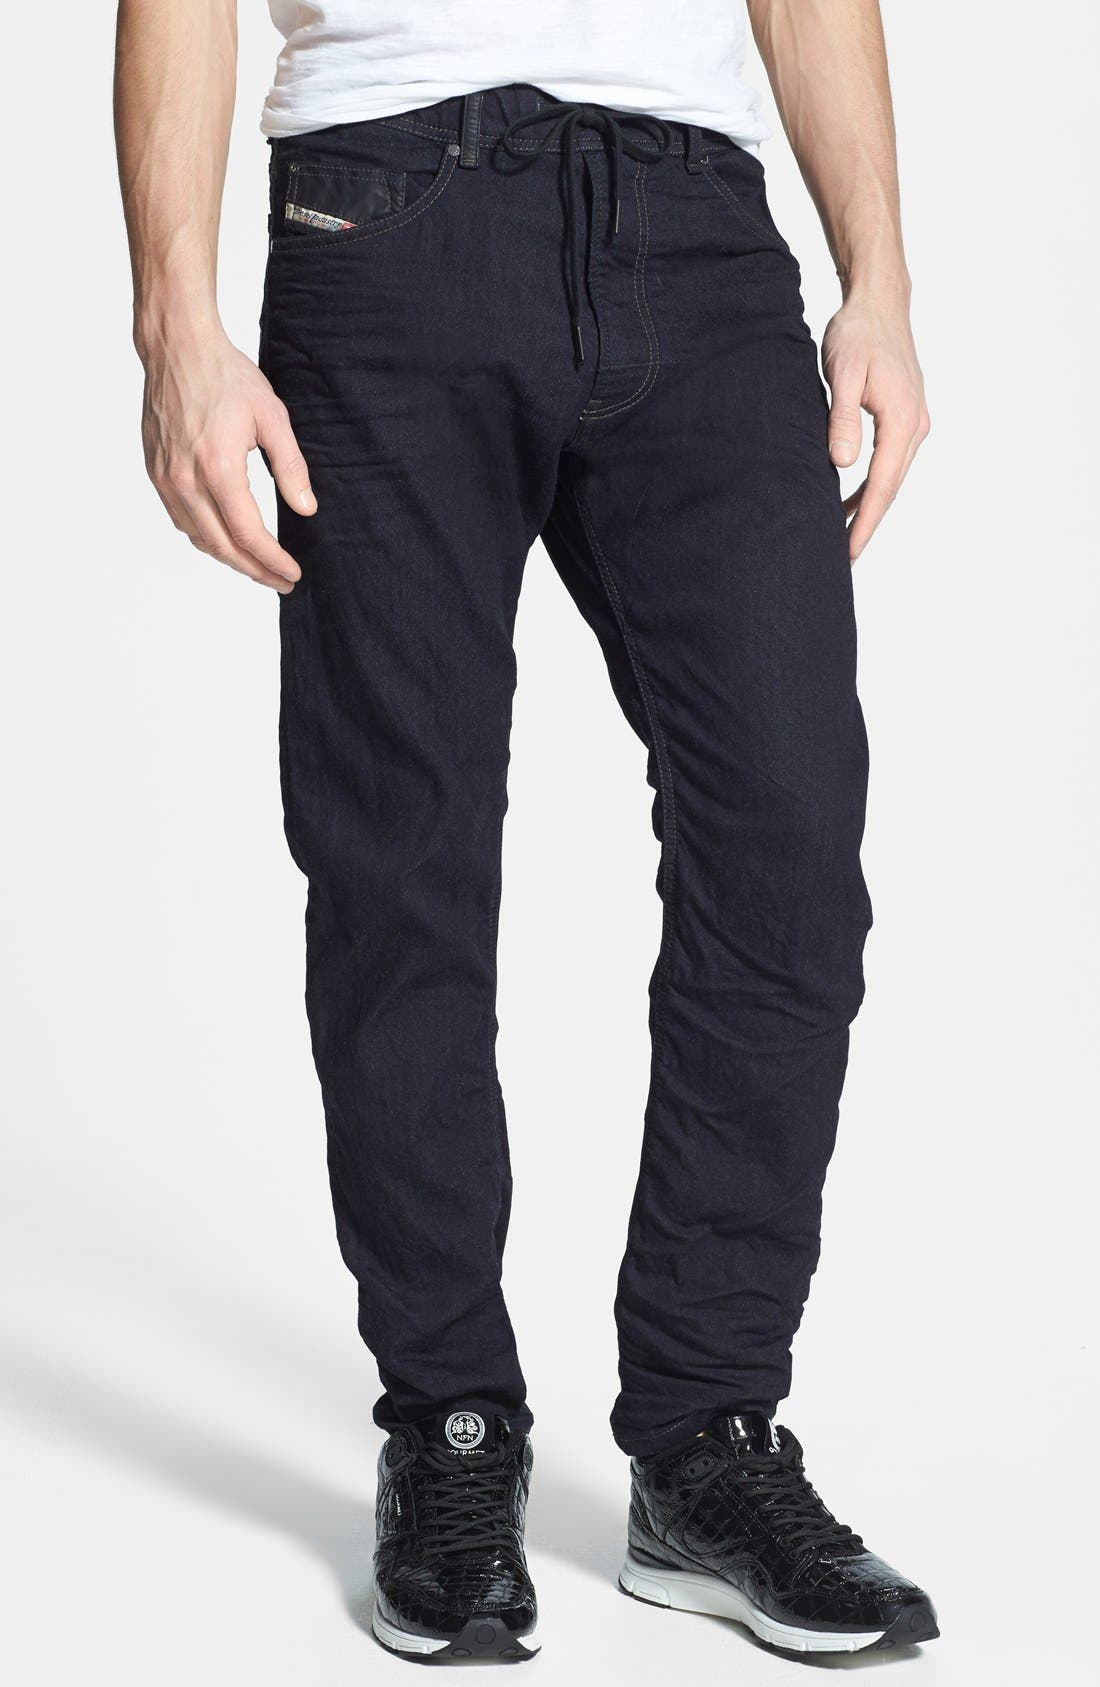 Main Image - DIESEL® 'Narrot Jogg' Slim Fit Jeans (600V)